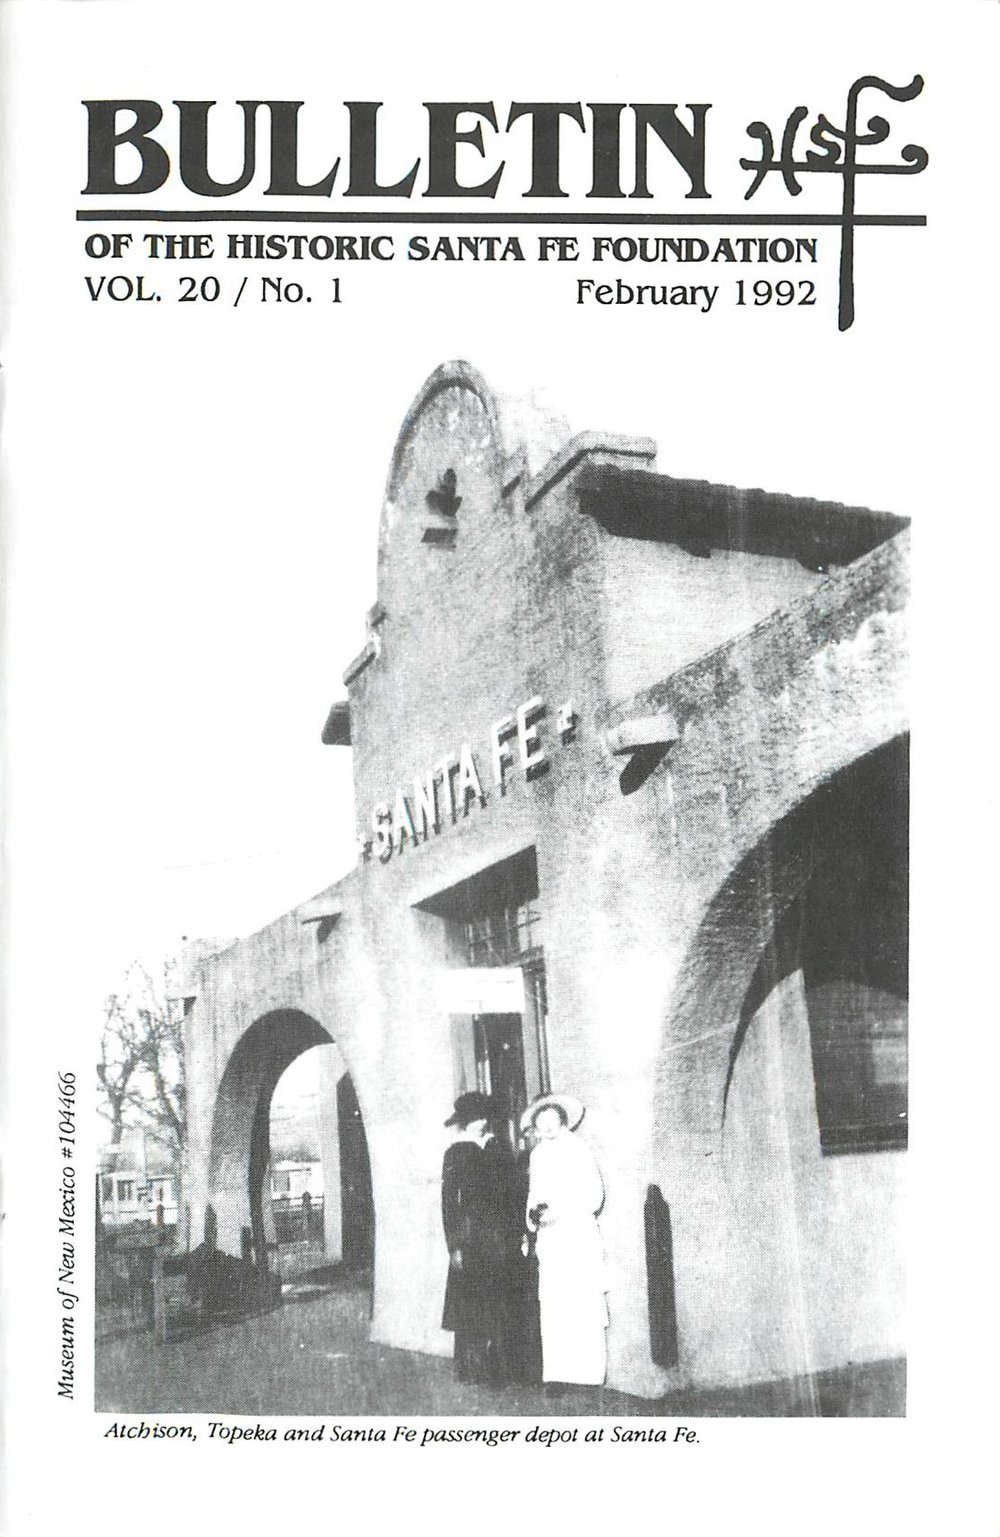 1992 HSFF Bulletin Vol.20 No.1 Cover